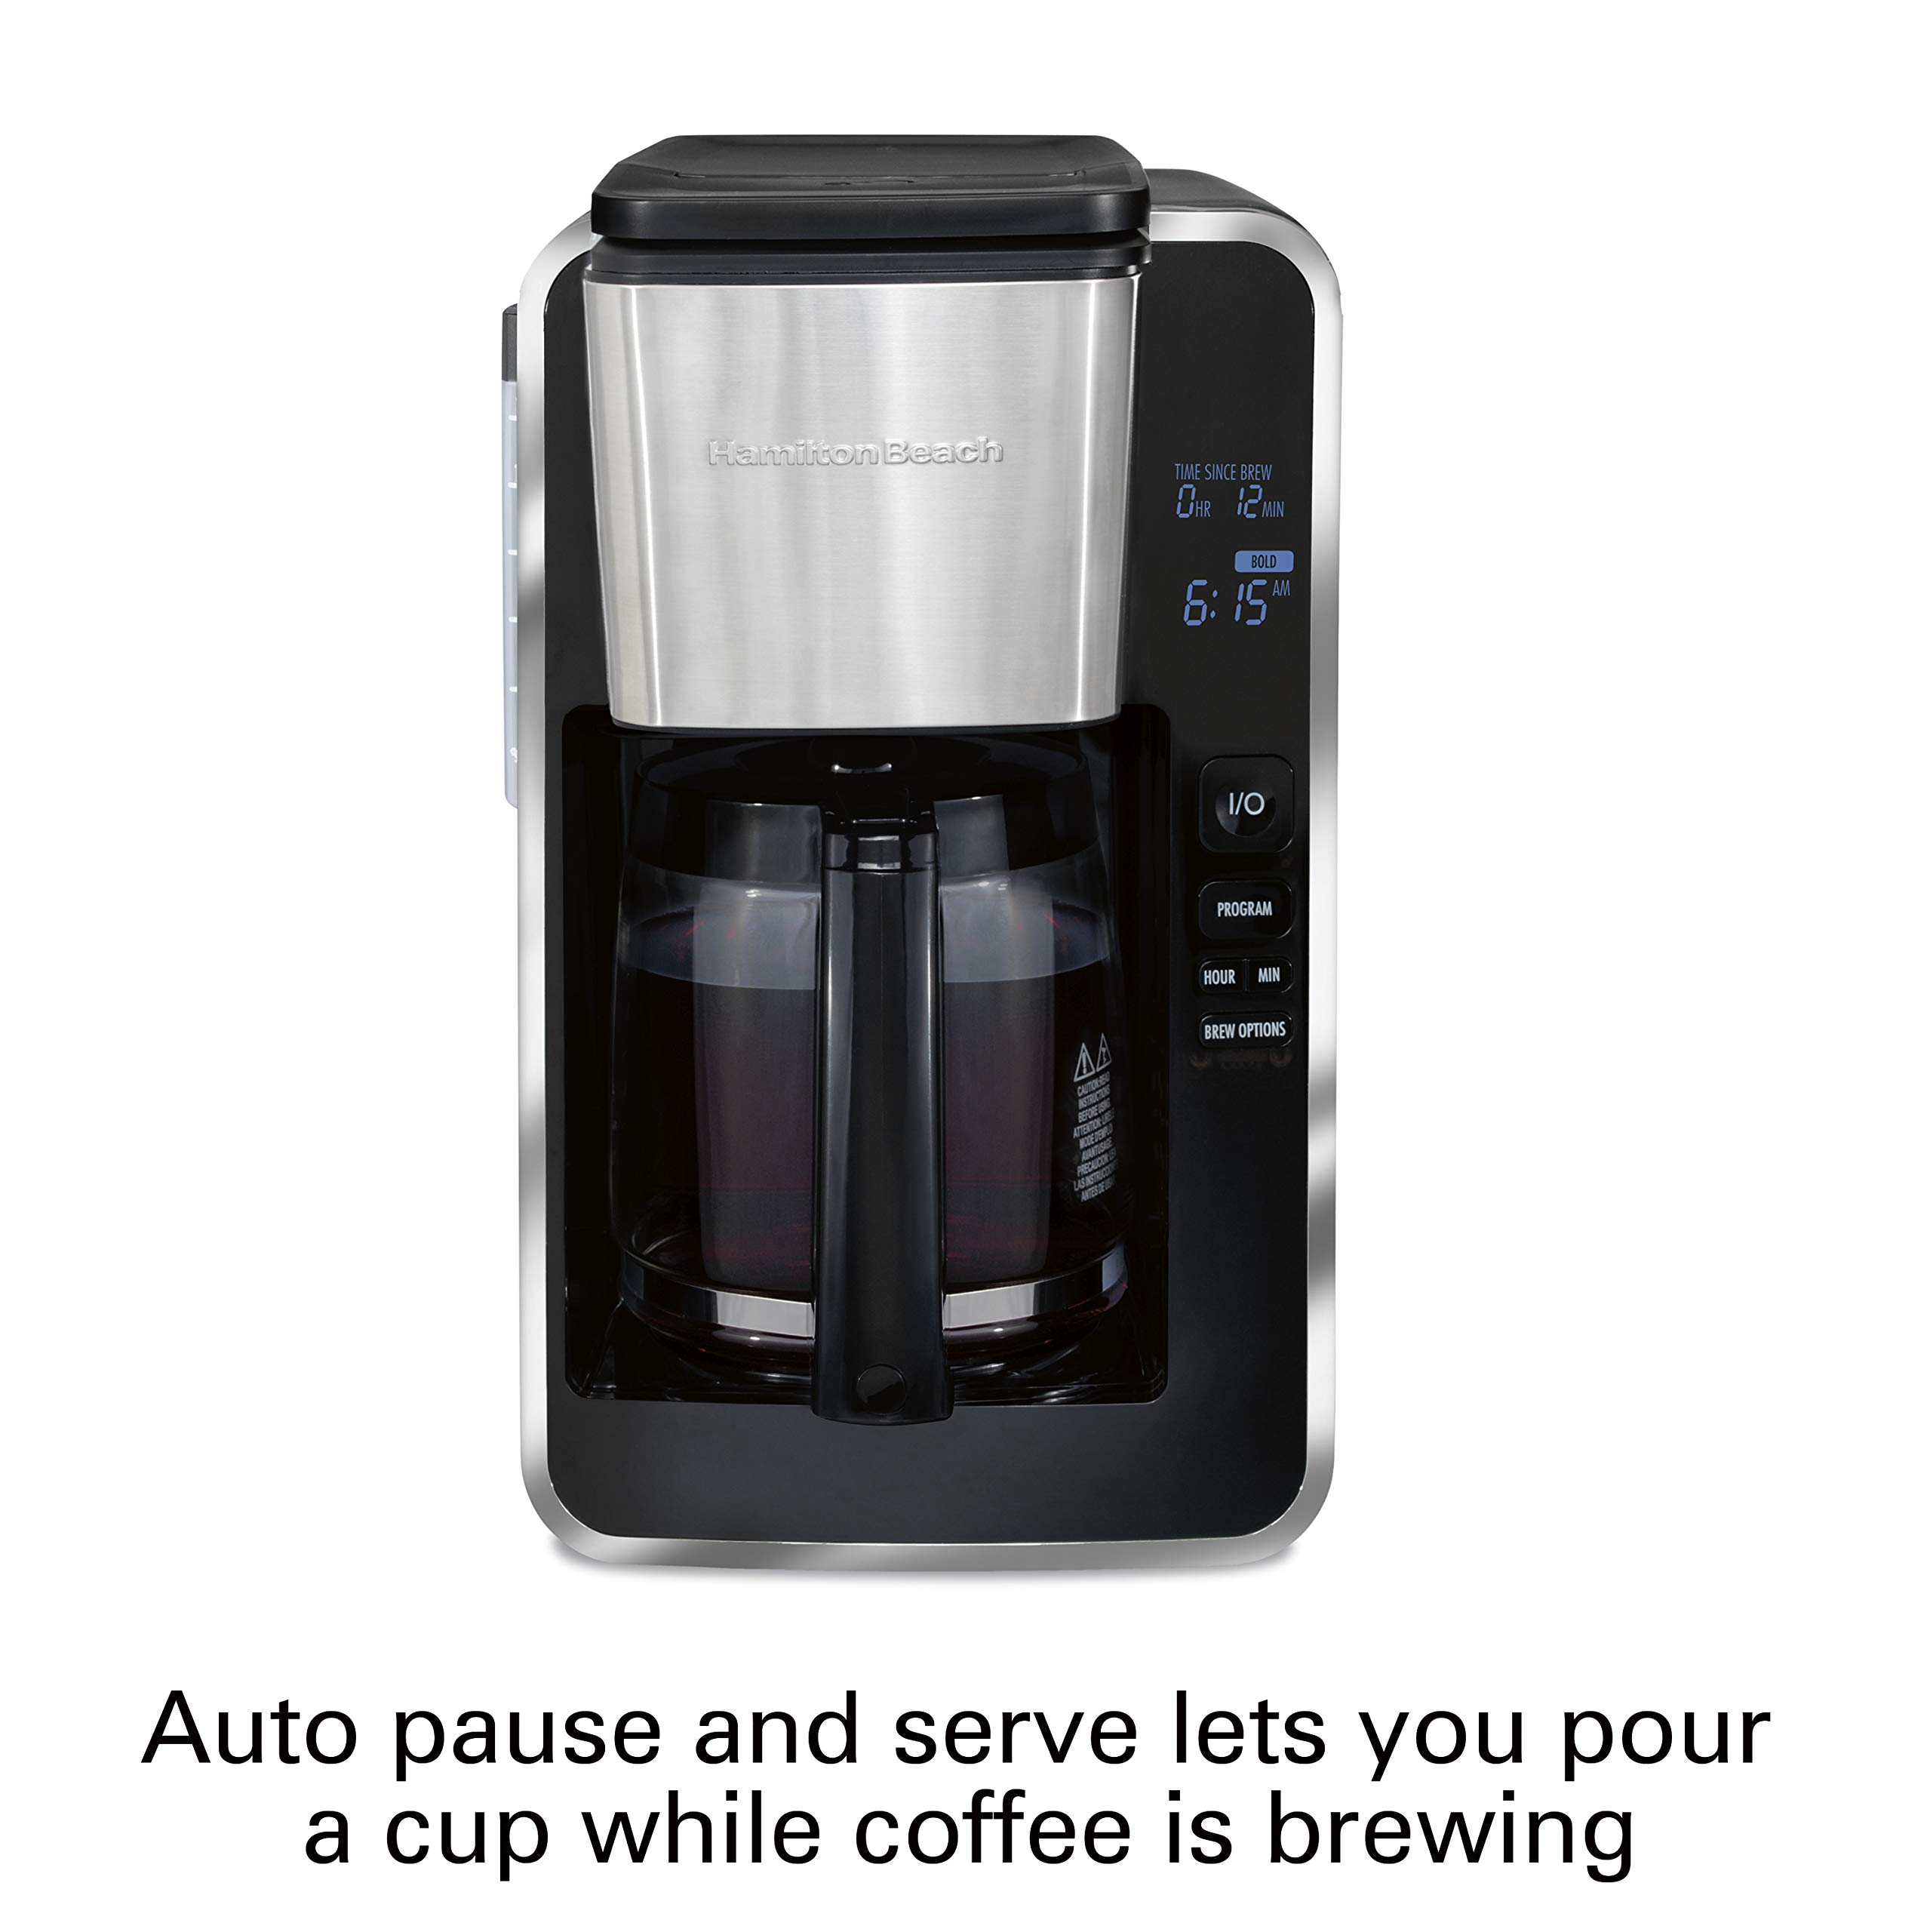 Hamilton Beach Programmable 12 Cup Coffee Maker, Easy Front Access Deluxe, Brew Options, Black and Stainless (46320), by Hamilton Beach (Image #5)